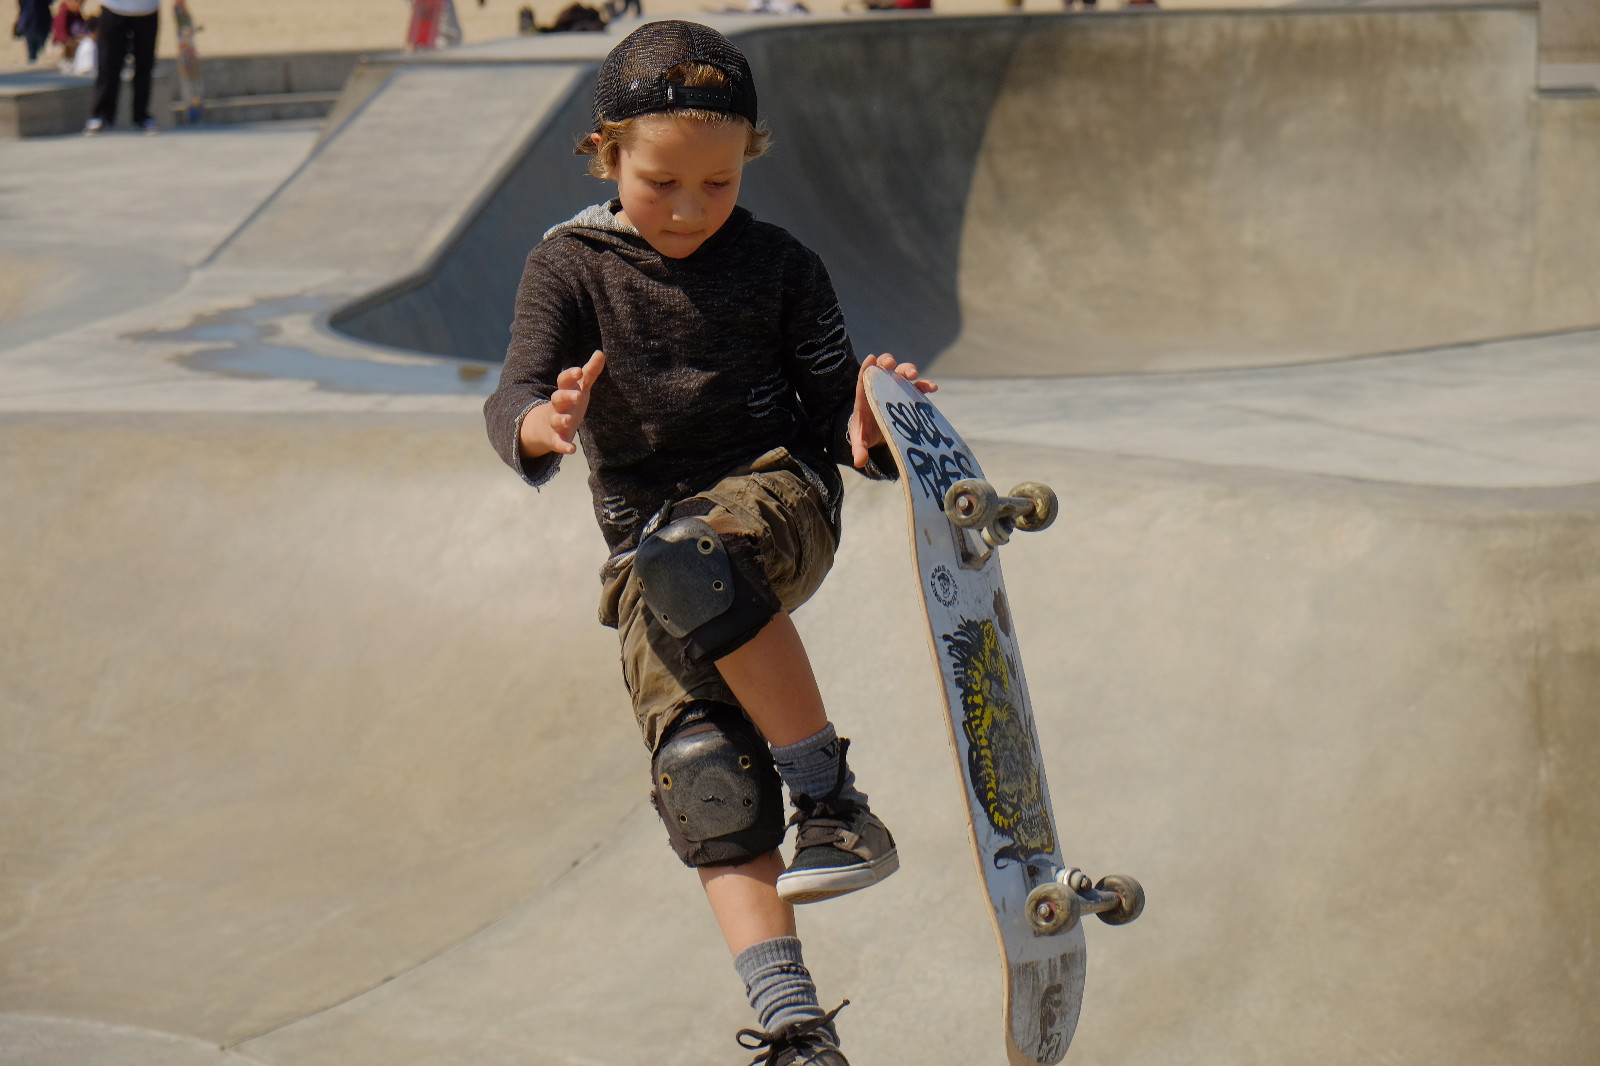 It's so much fun to watch the young and seasoned talent at the Venice Skate Park.